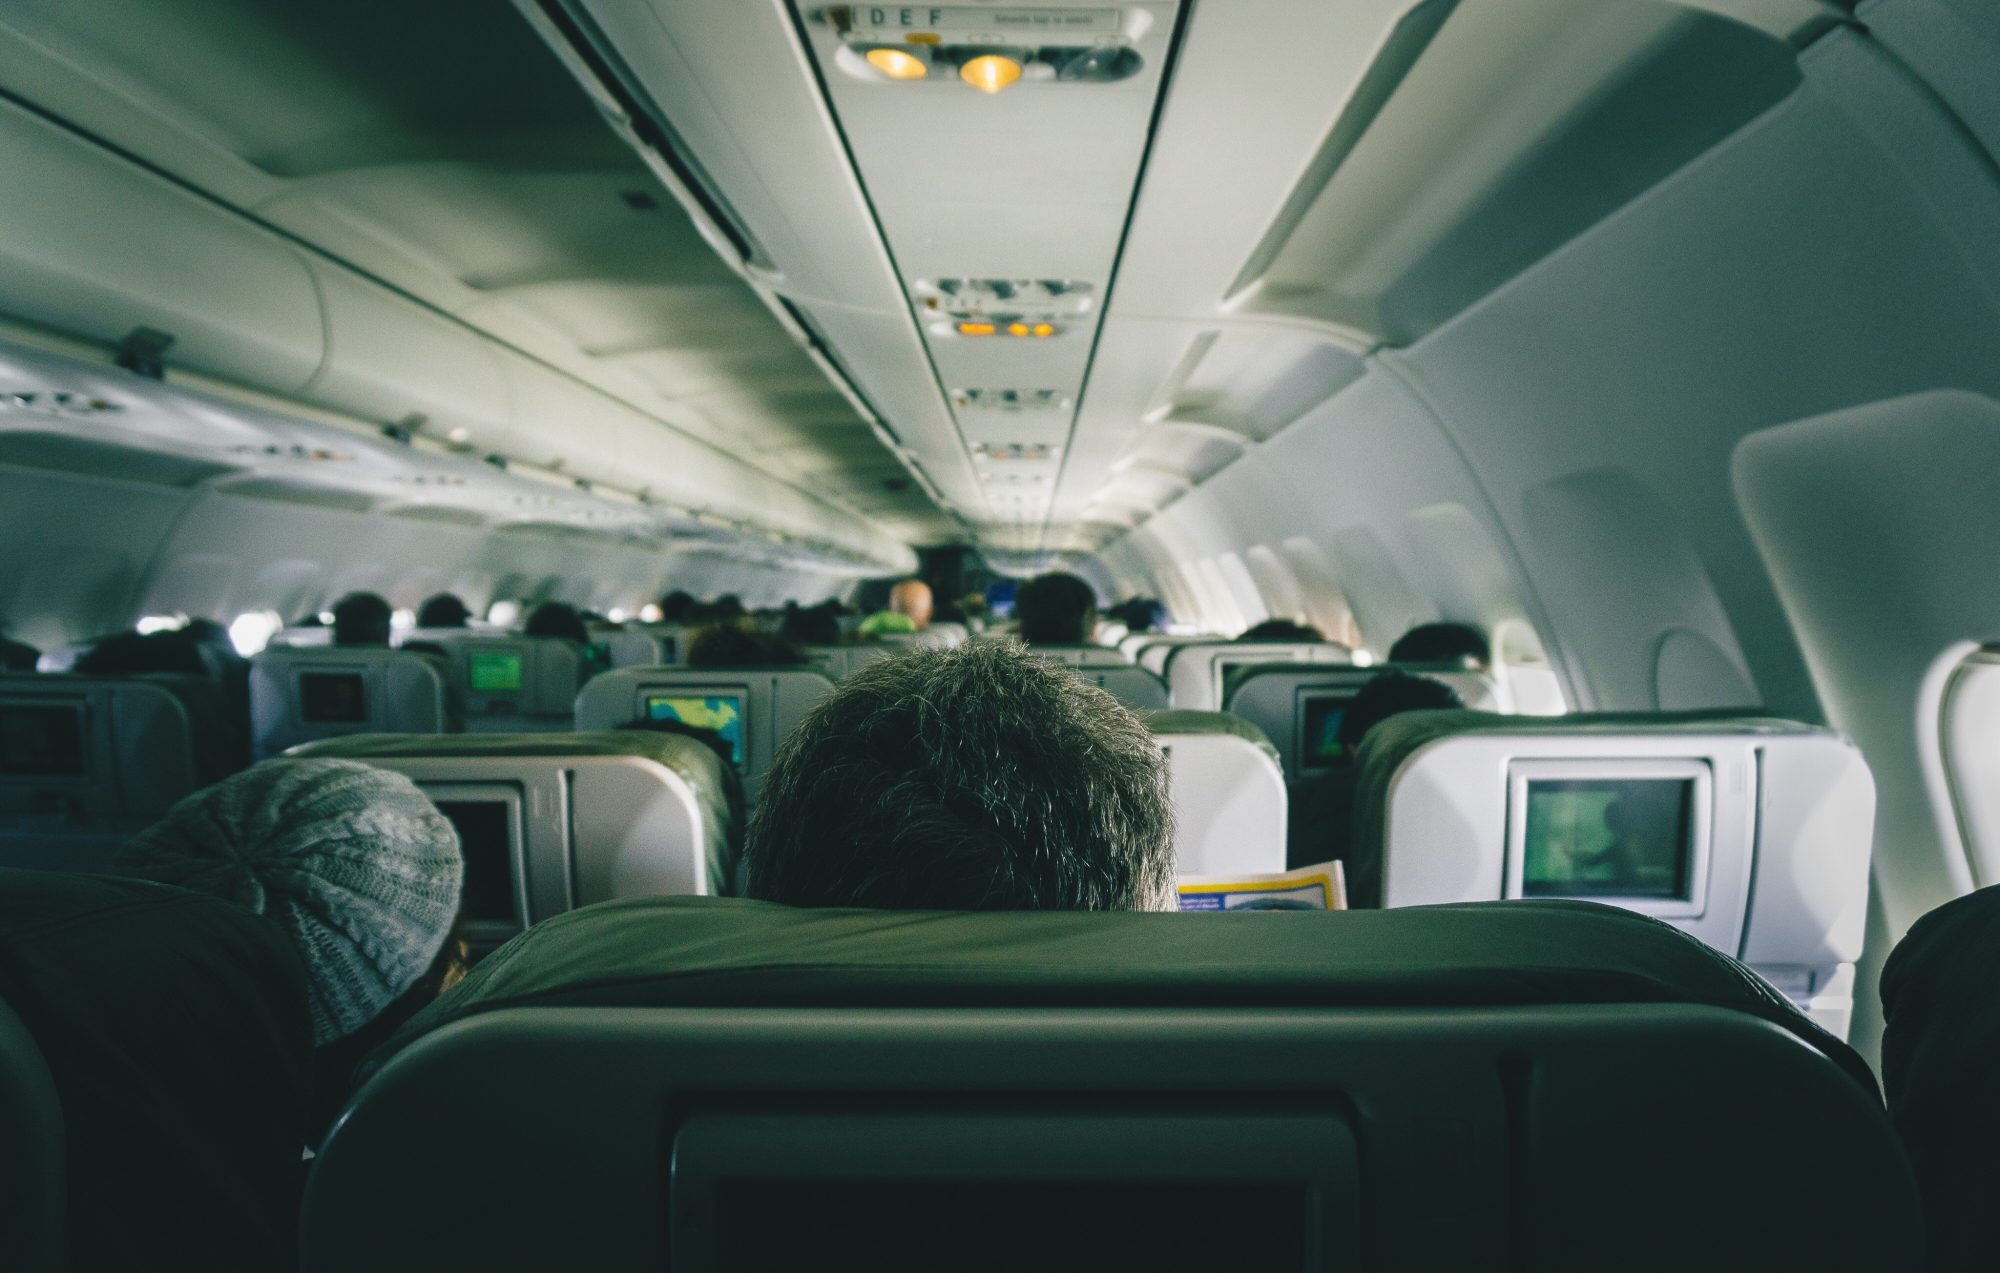 How to Avoid Getting Sick on a Plane, According to Science